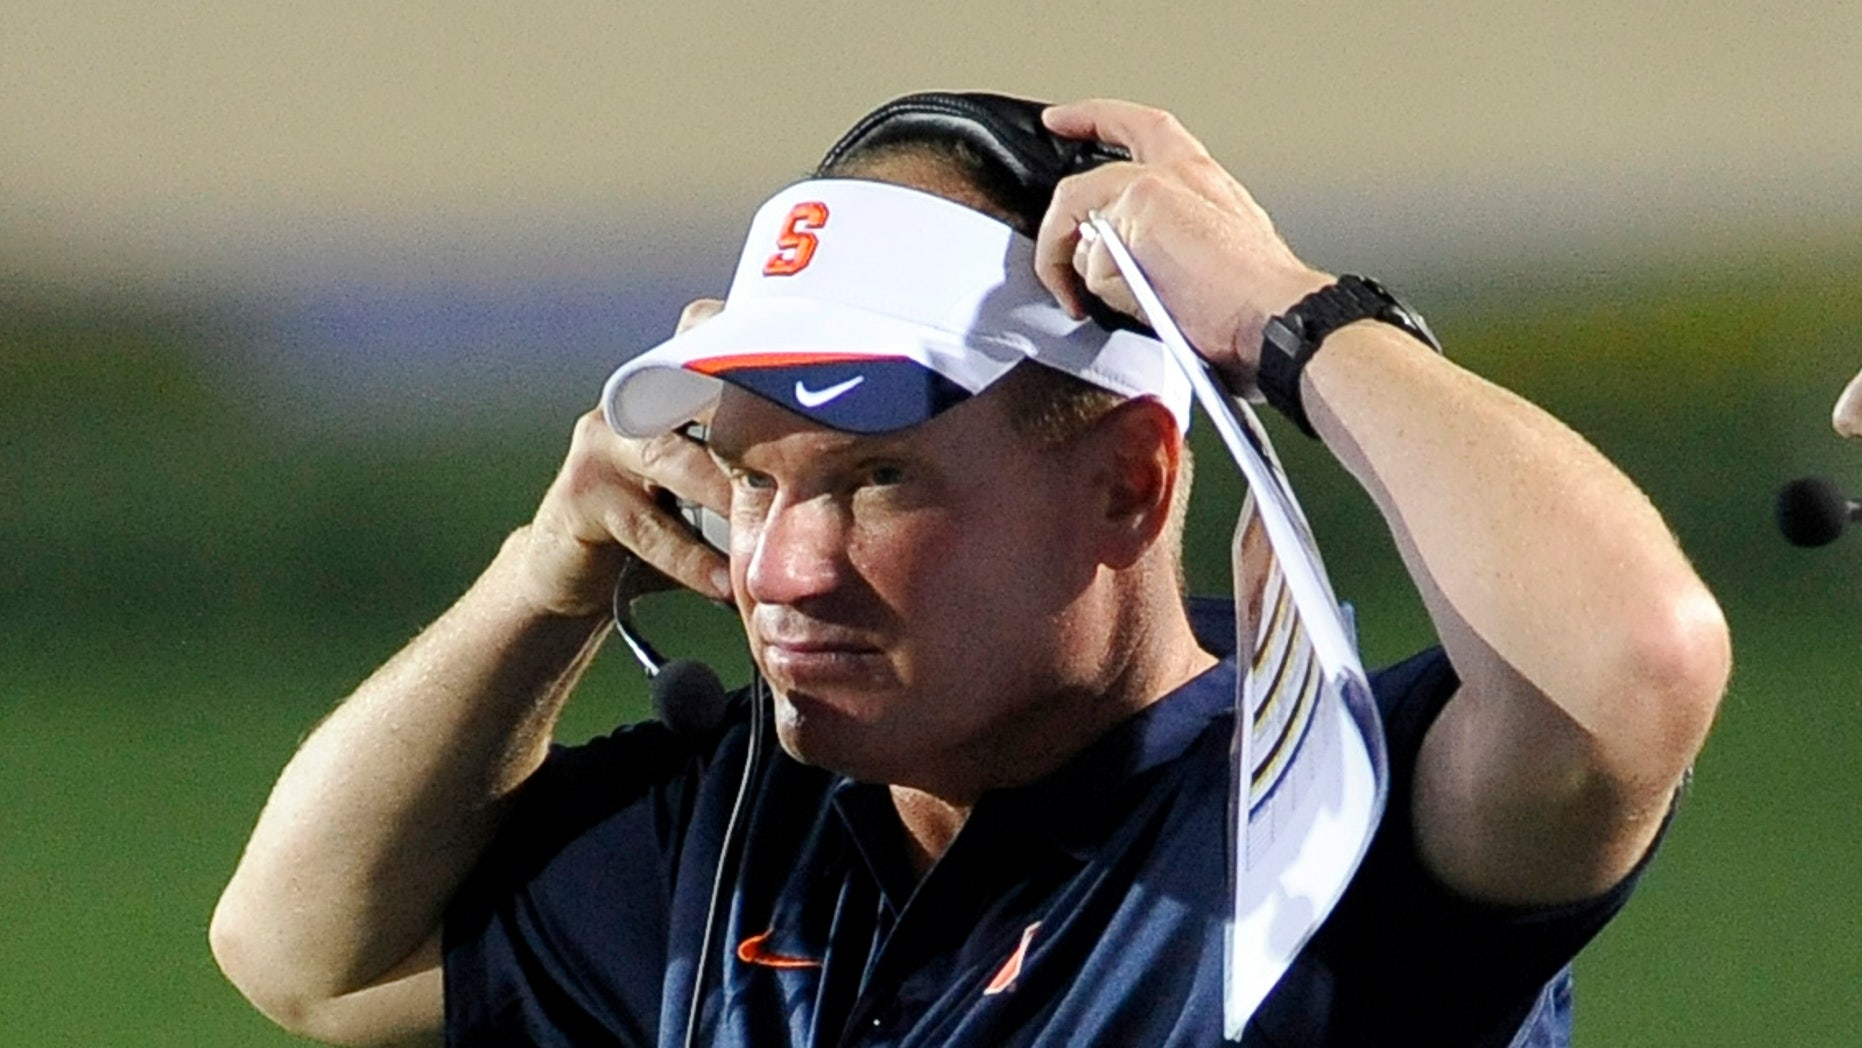 FILE - In this Sept. 7, 2013 file photo, Syracuse NCAA college football coach Scott Shaferwatches the action during an NCAA college football game against Northwestern University in Evanston, Ill. Shafer has had a bye week to right what went wrong against Georgia Tech. There was a lot to work on. (AP Photo/Matt Marton, File)